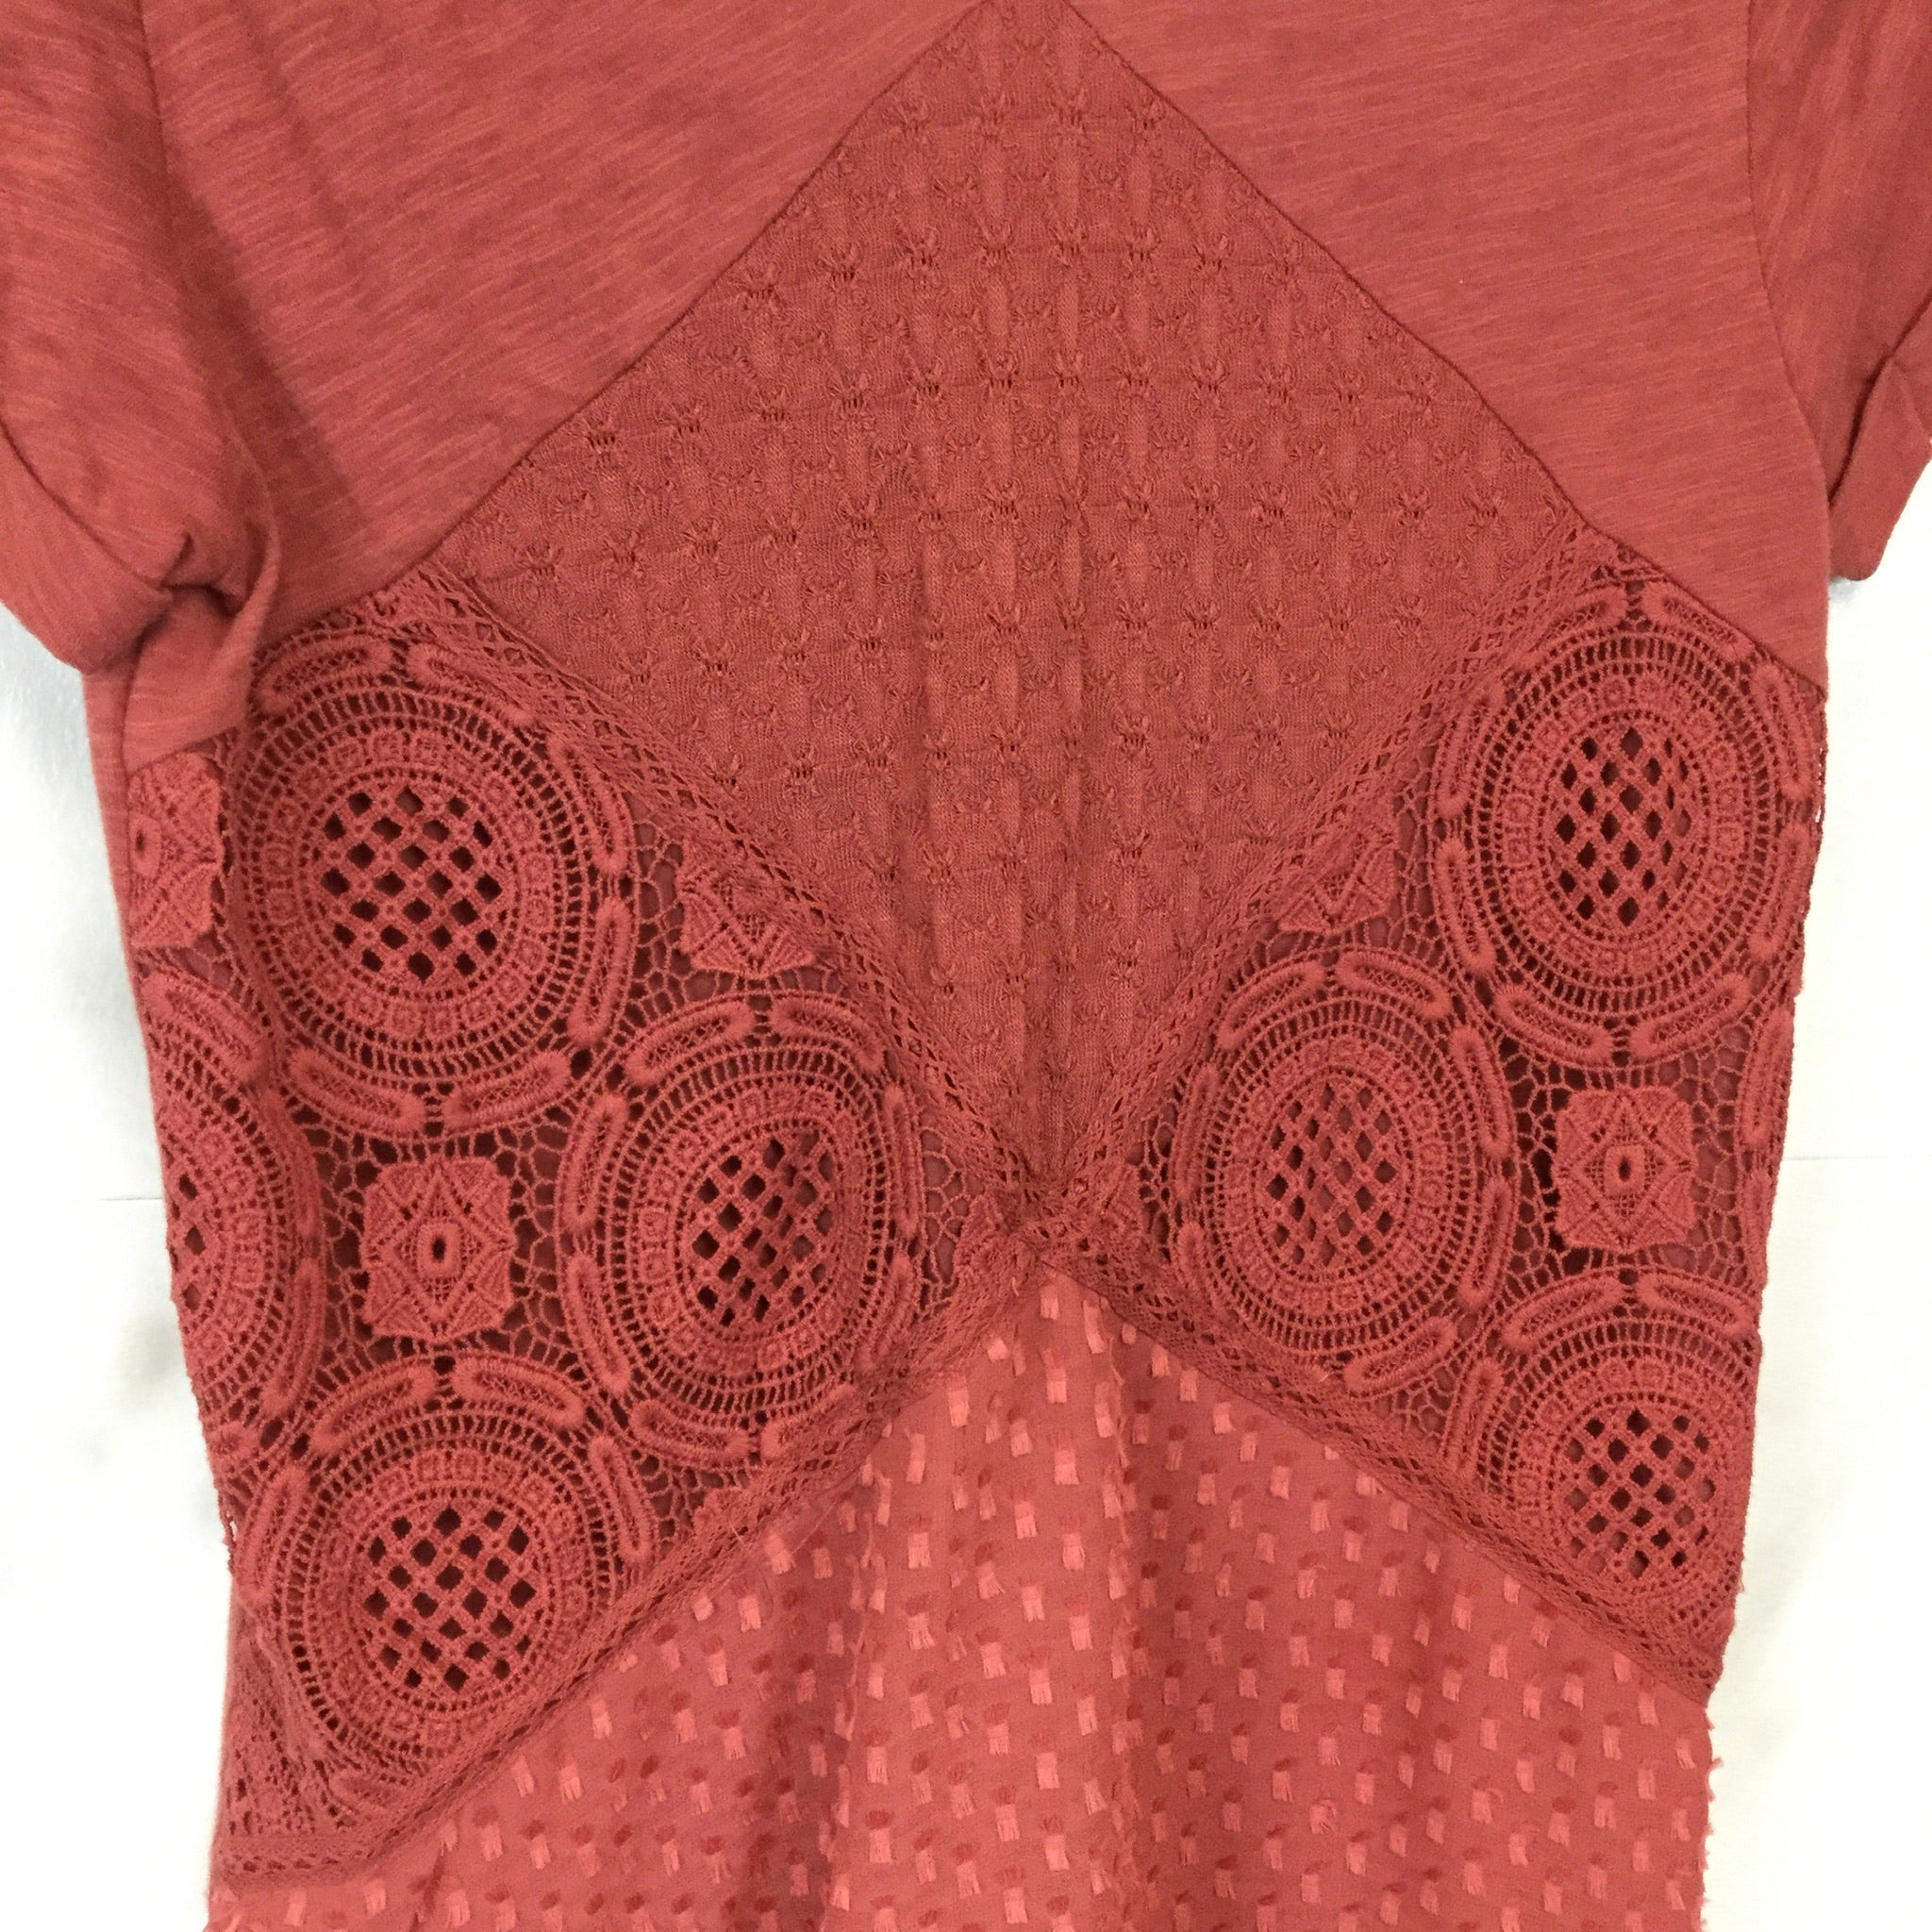 Anthropologie Meadow Rue Patchwork Lace Tee - Size S